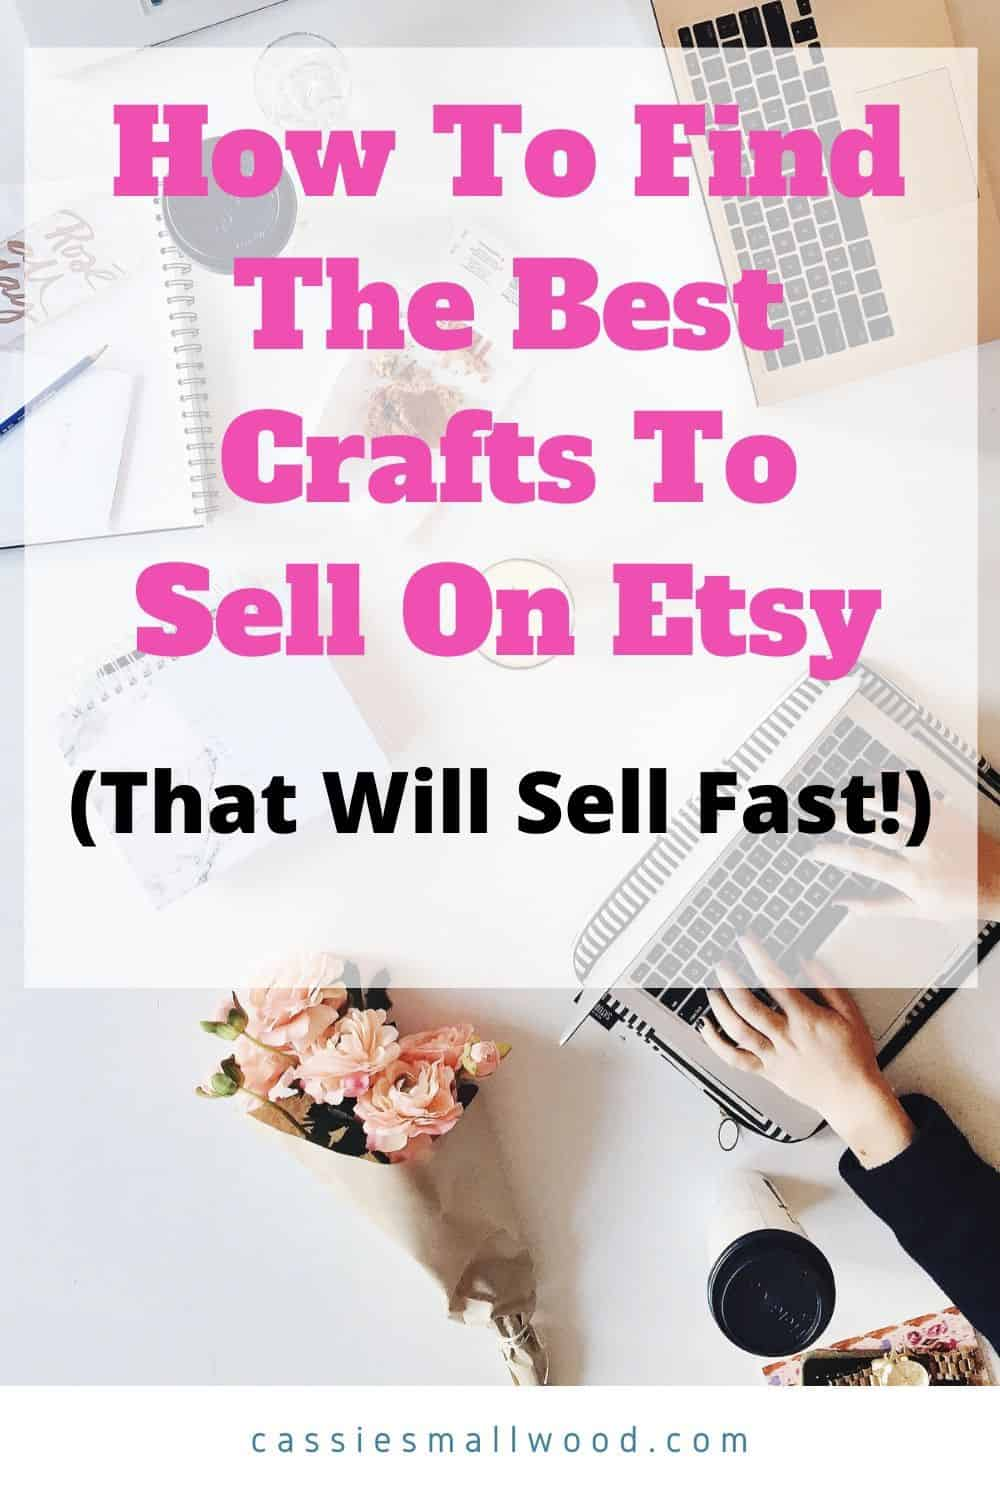 The Easiest Way To Find The Best Crafts To Sell On Etsy That Will ...